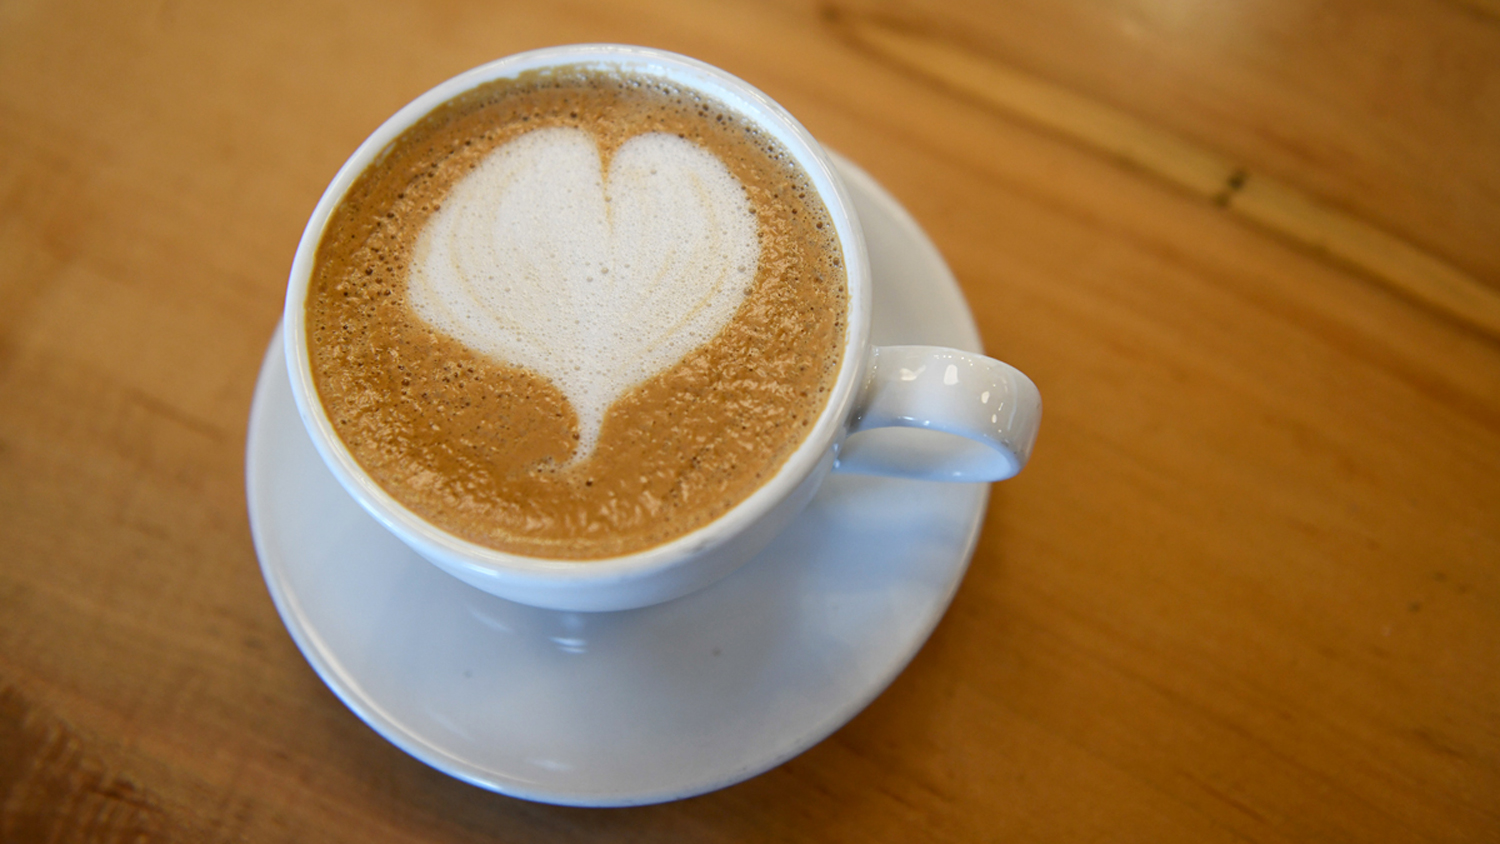 A heart shape appears in a cup of coffee